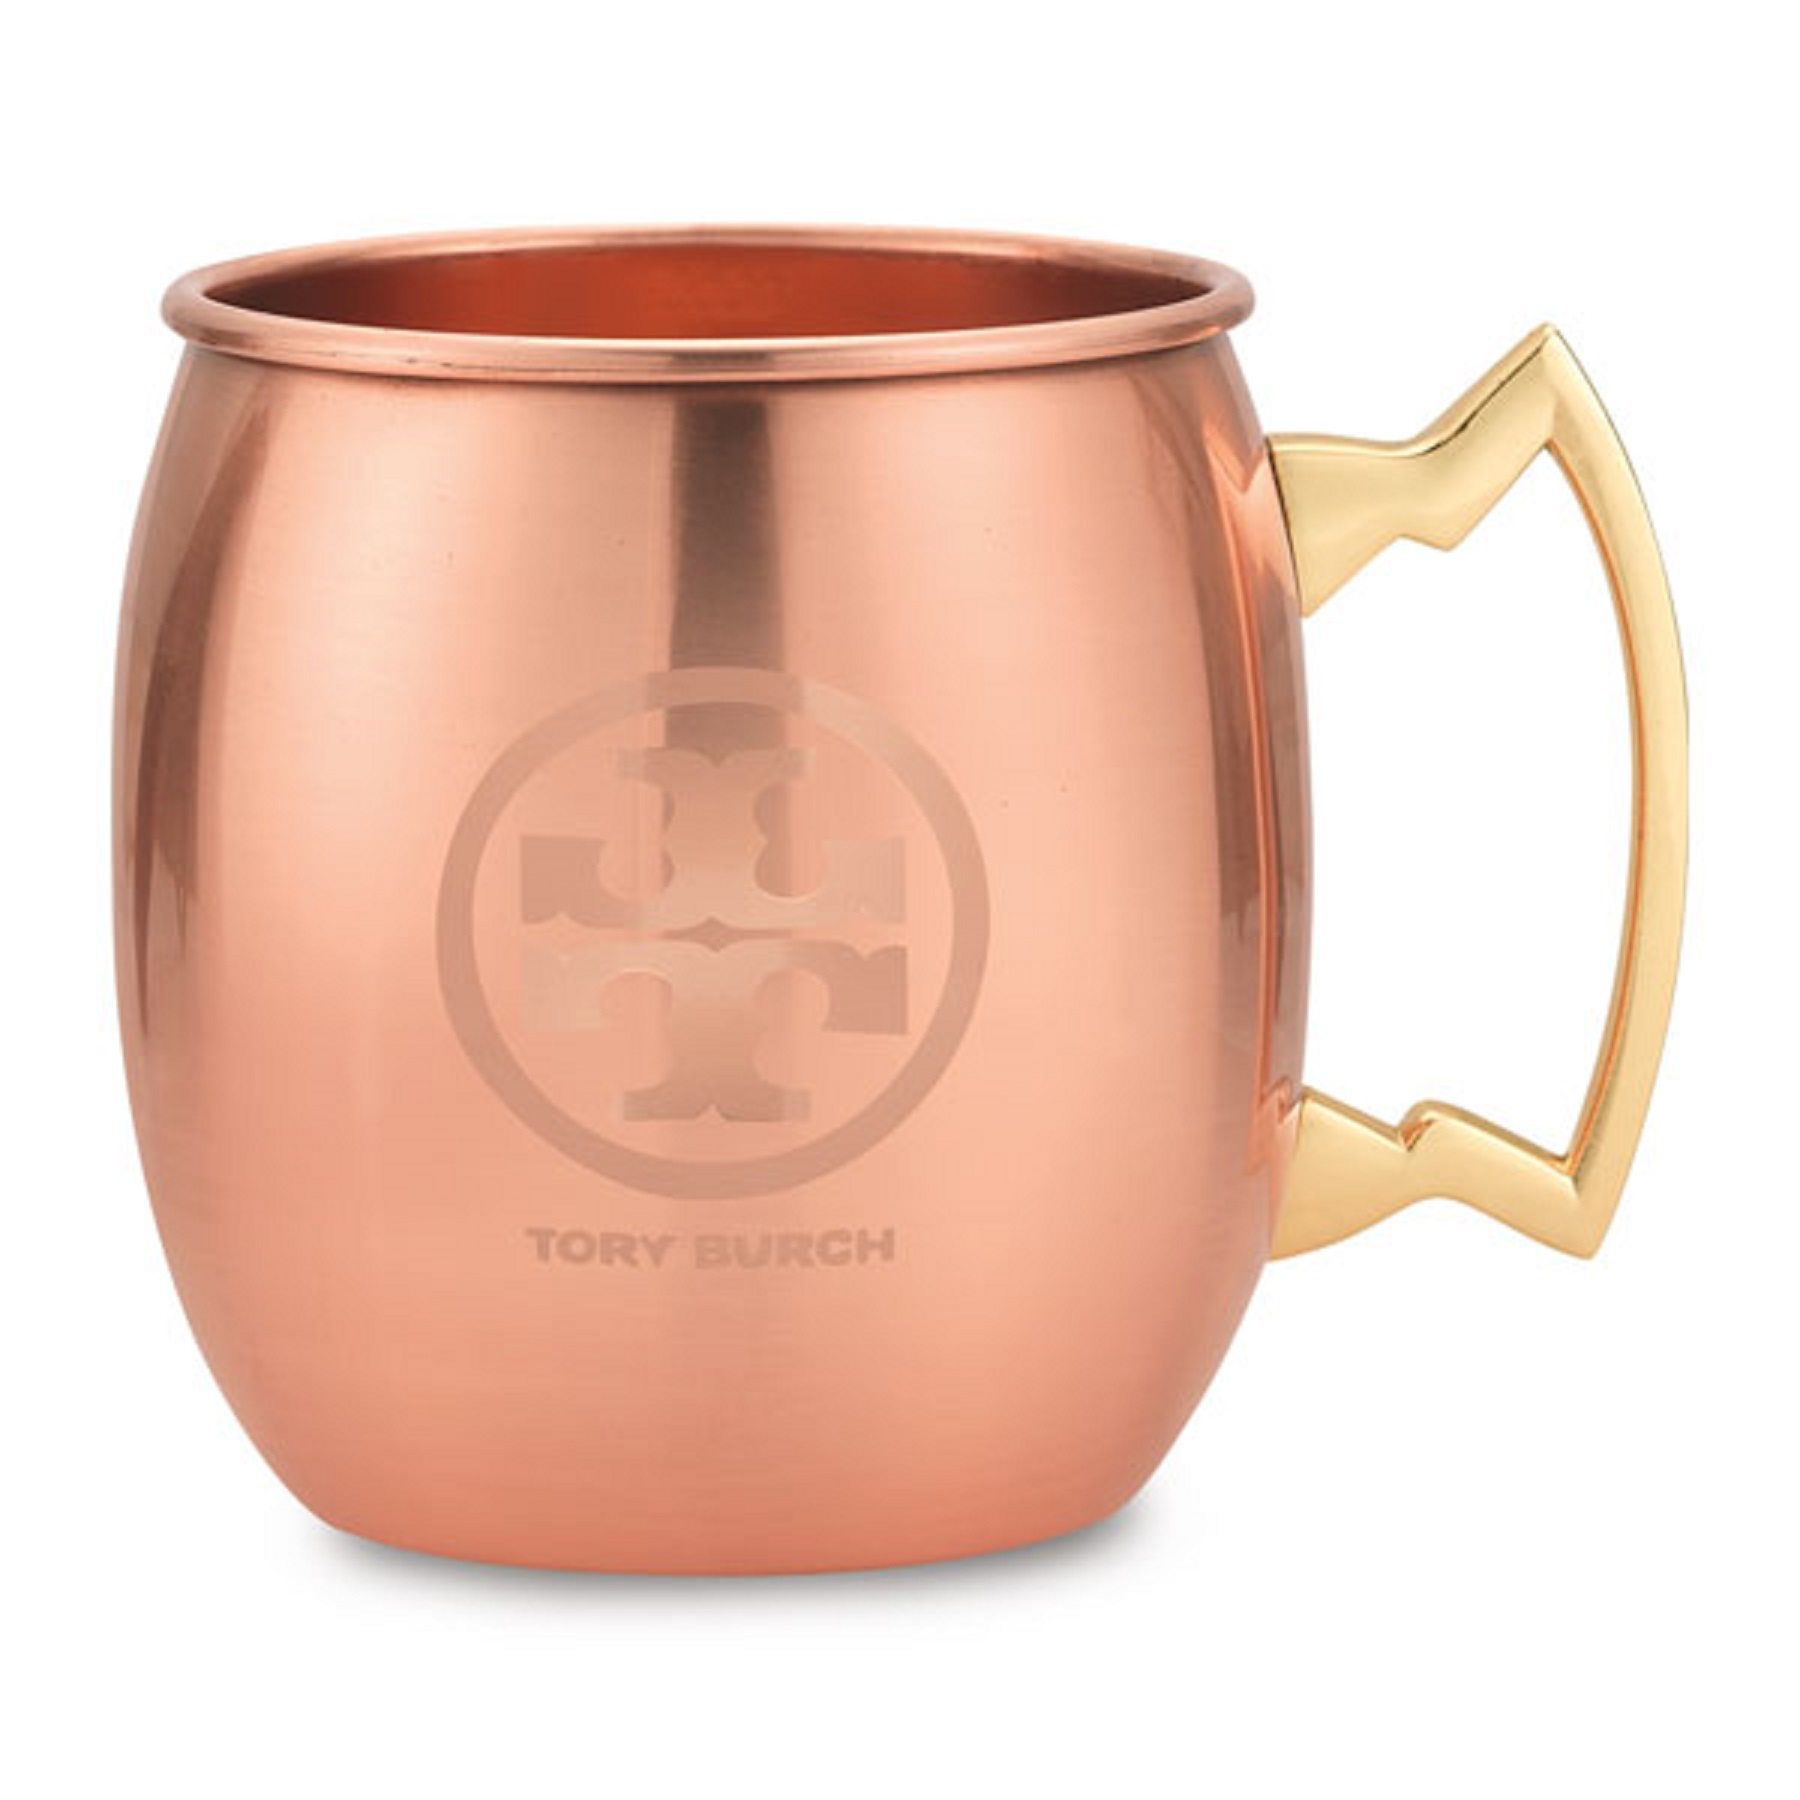 994940068-202 - Moscow Mule Four Mug Gift Set w/Leatherette Tray - thumbnail